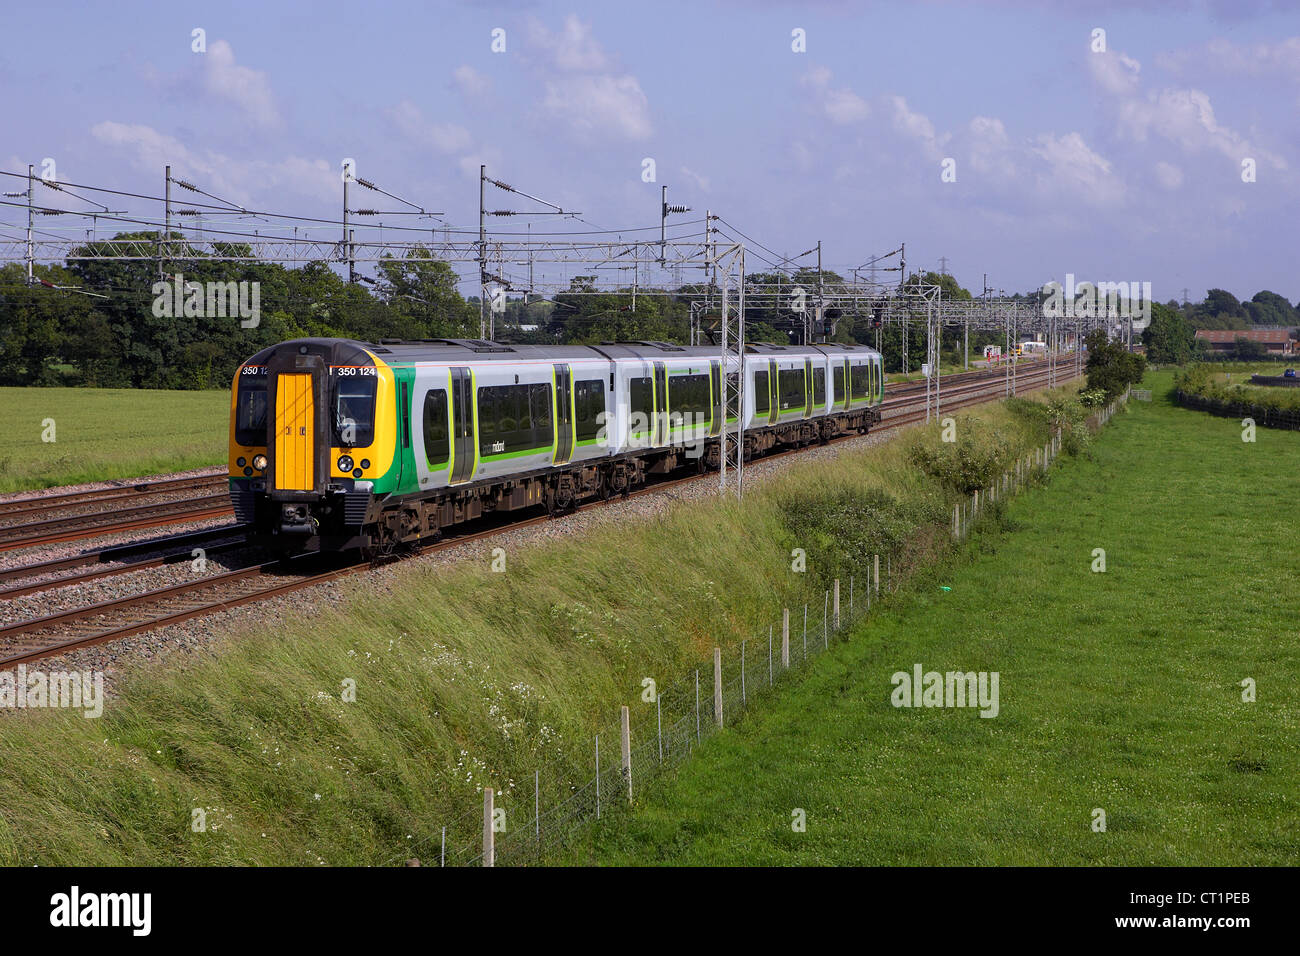 london midland desiro number 350124 heads through Rugeley with a Euston - Crewe service on 28/06/12. - Stock Image